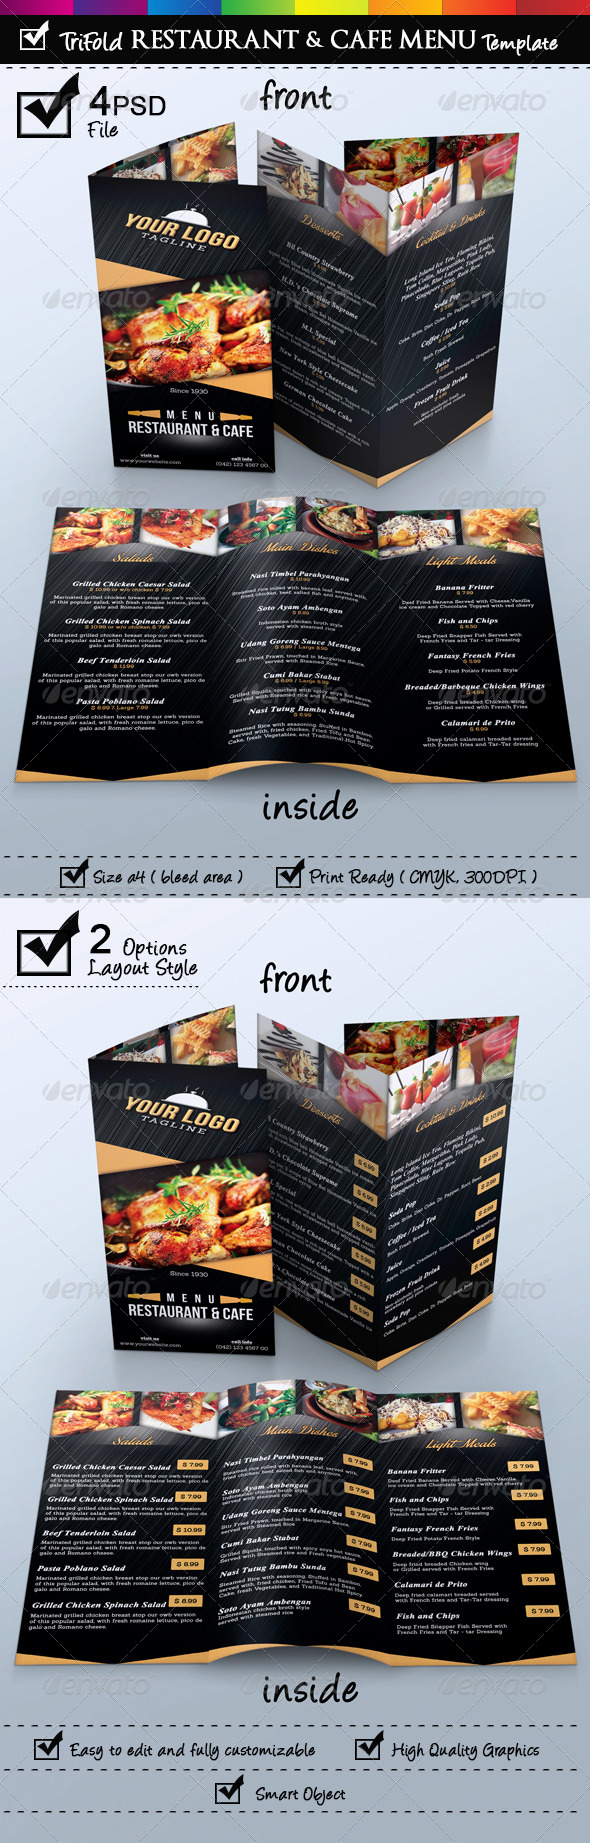 GraphicRiver Trifold Restaurant & Cafe Menu Template 6832892